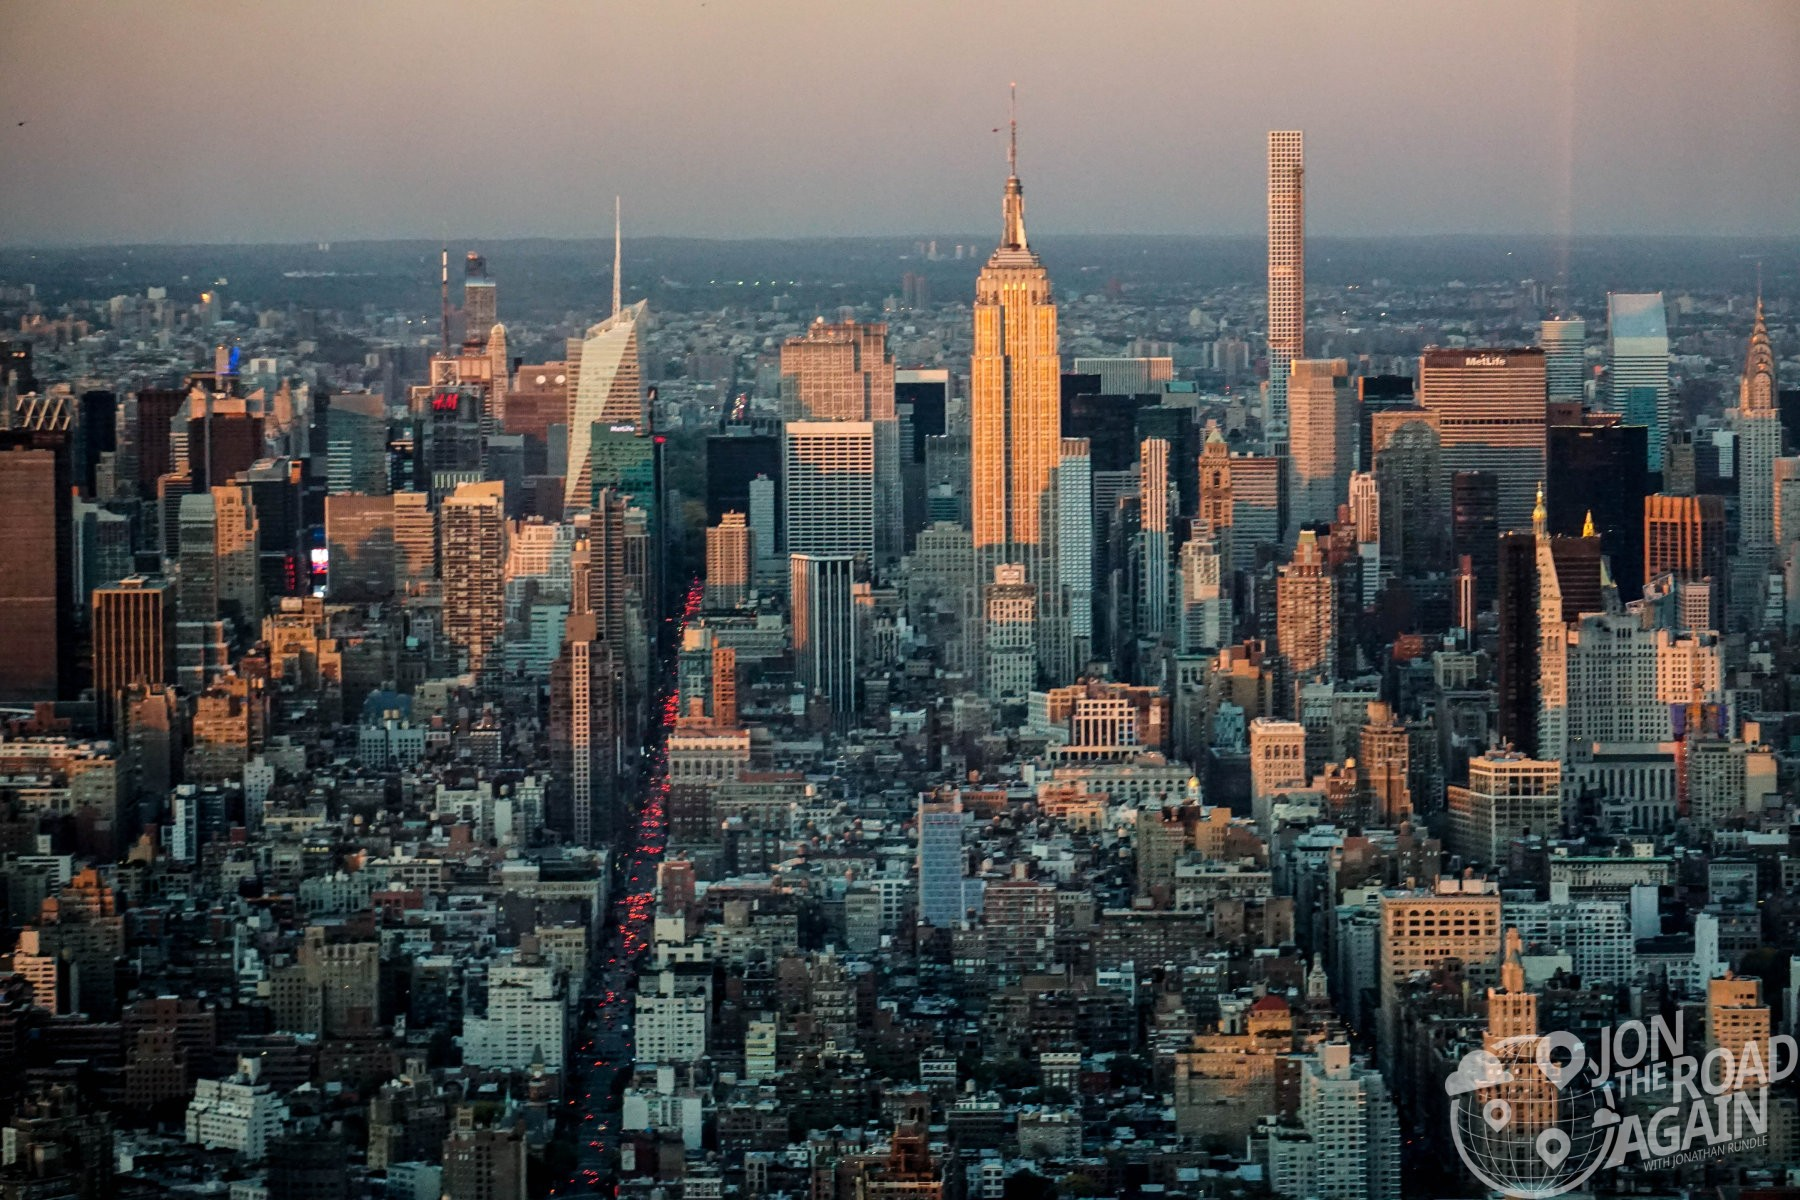 Midtown from One World Observatory